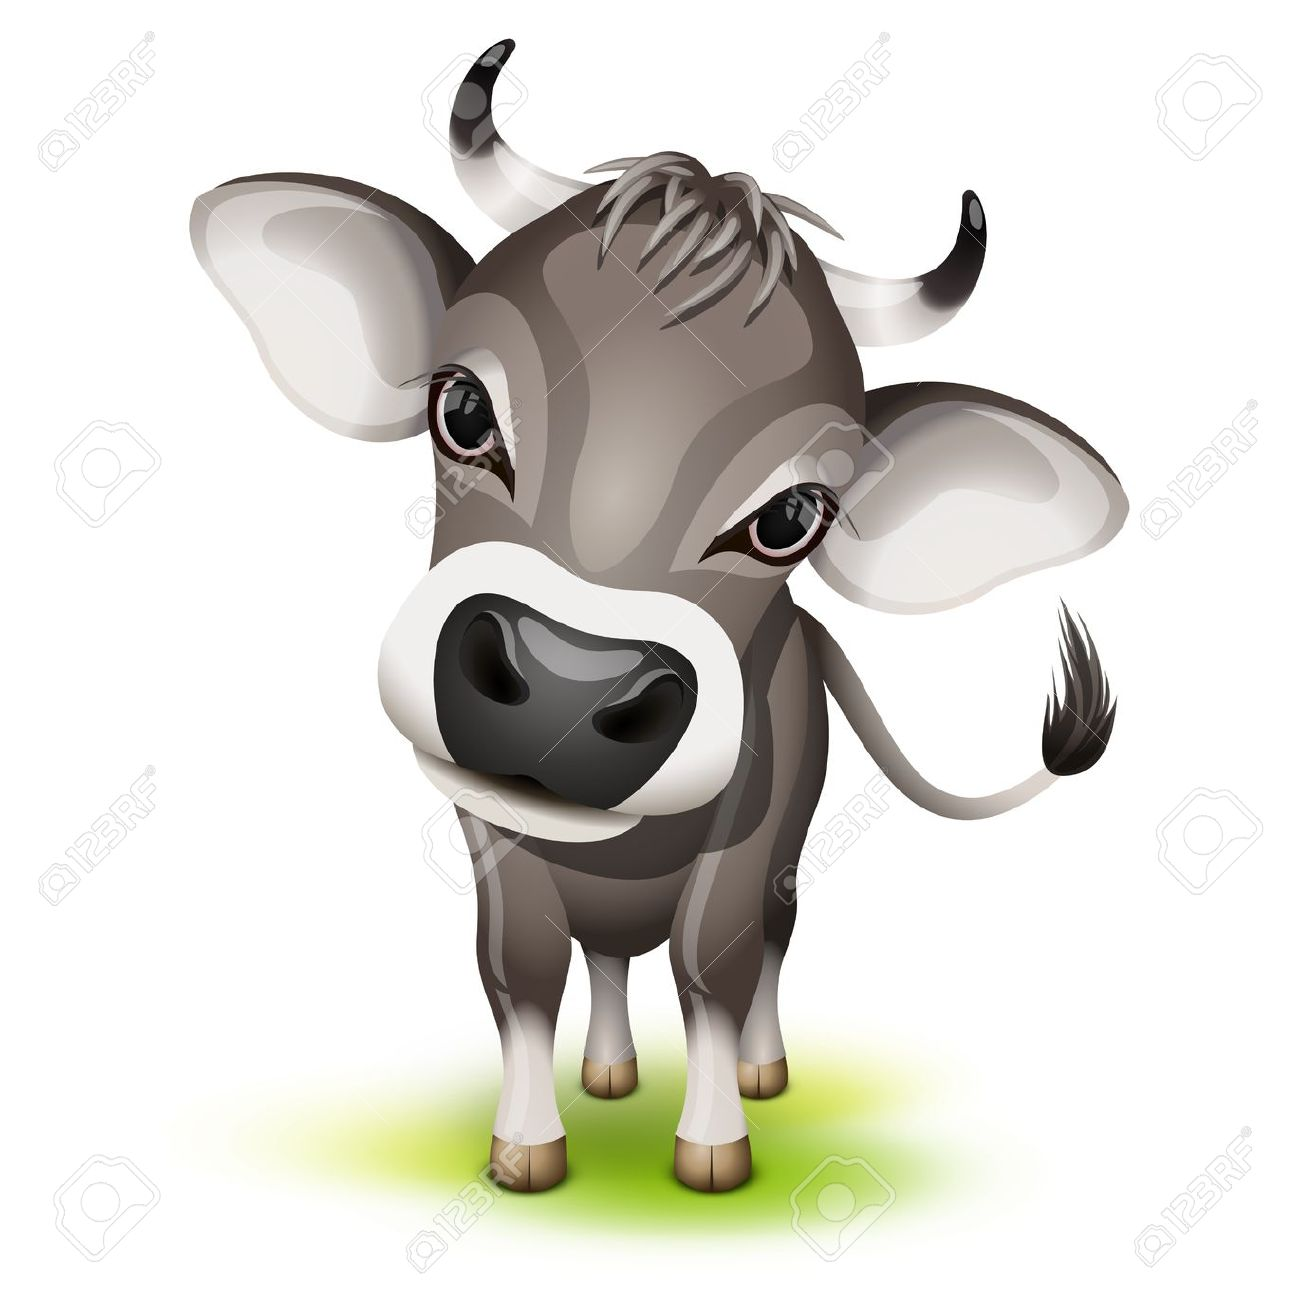 Swiss cow clipart.